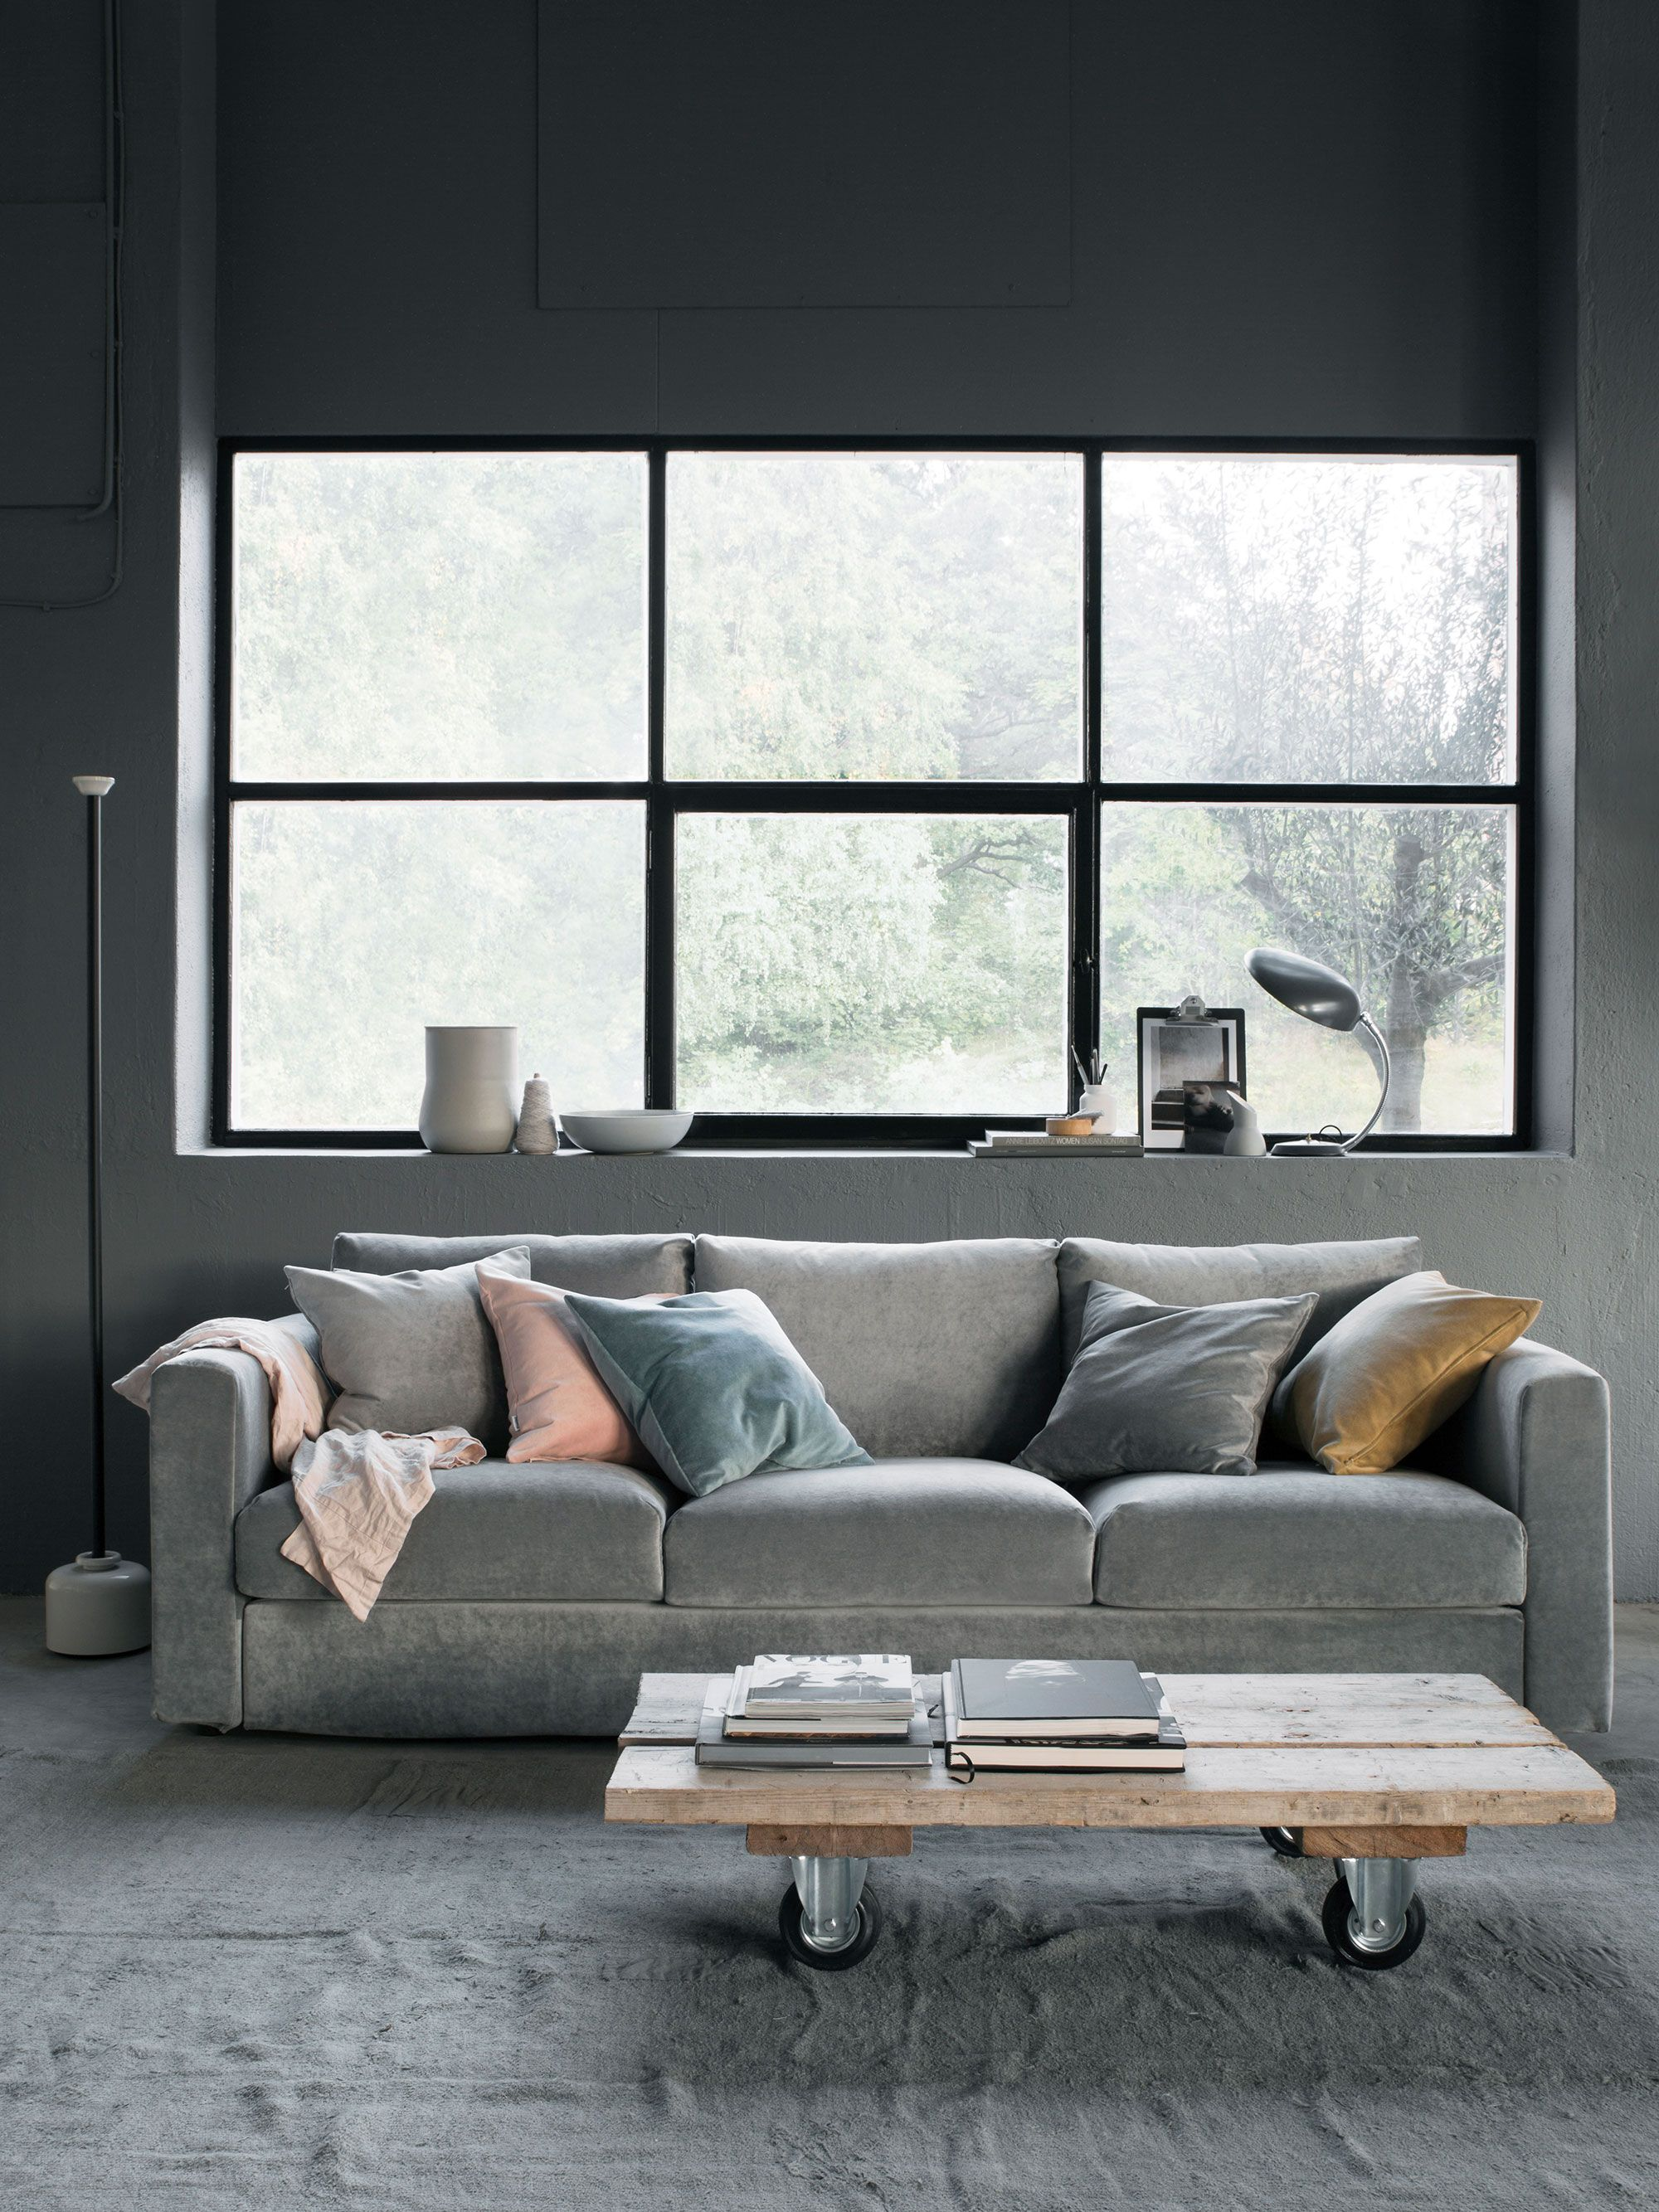 Gut Moody Shades | Grey Velvet Sofa With Pink And Blue Velvet Cushions |  Scandinavian Minimalism | Industrial Style Window | IKEA Vimle Sofa With A  Bemz Cover ...